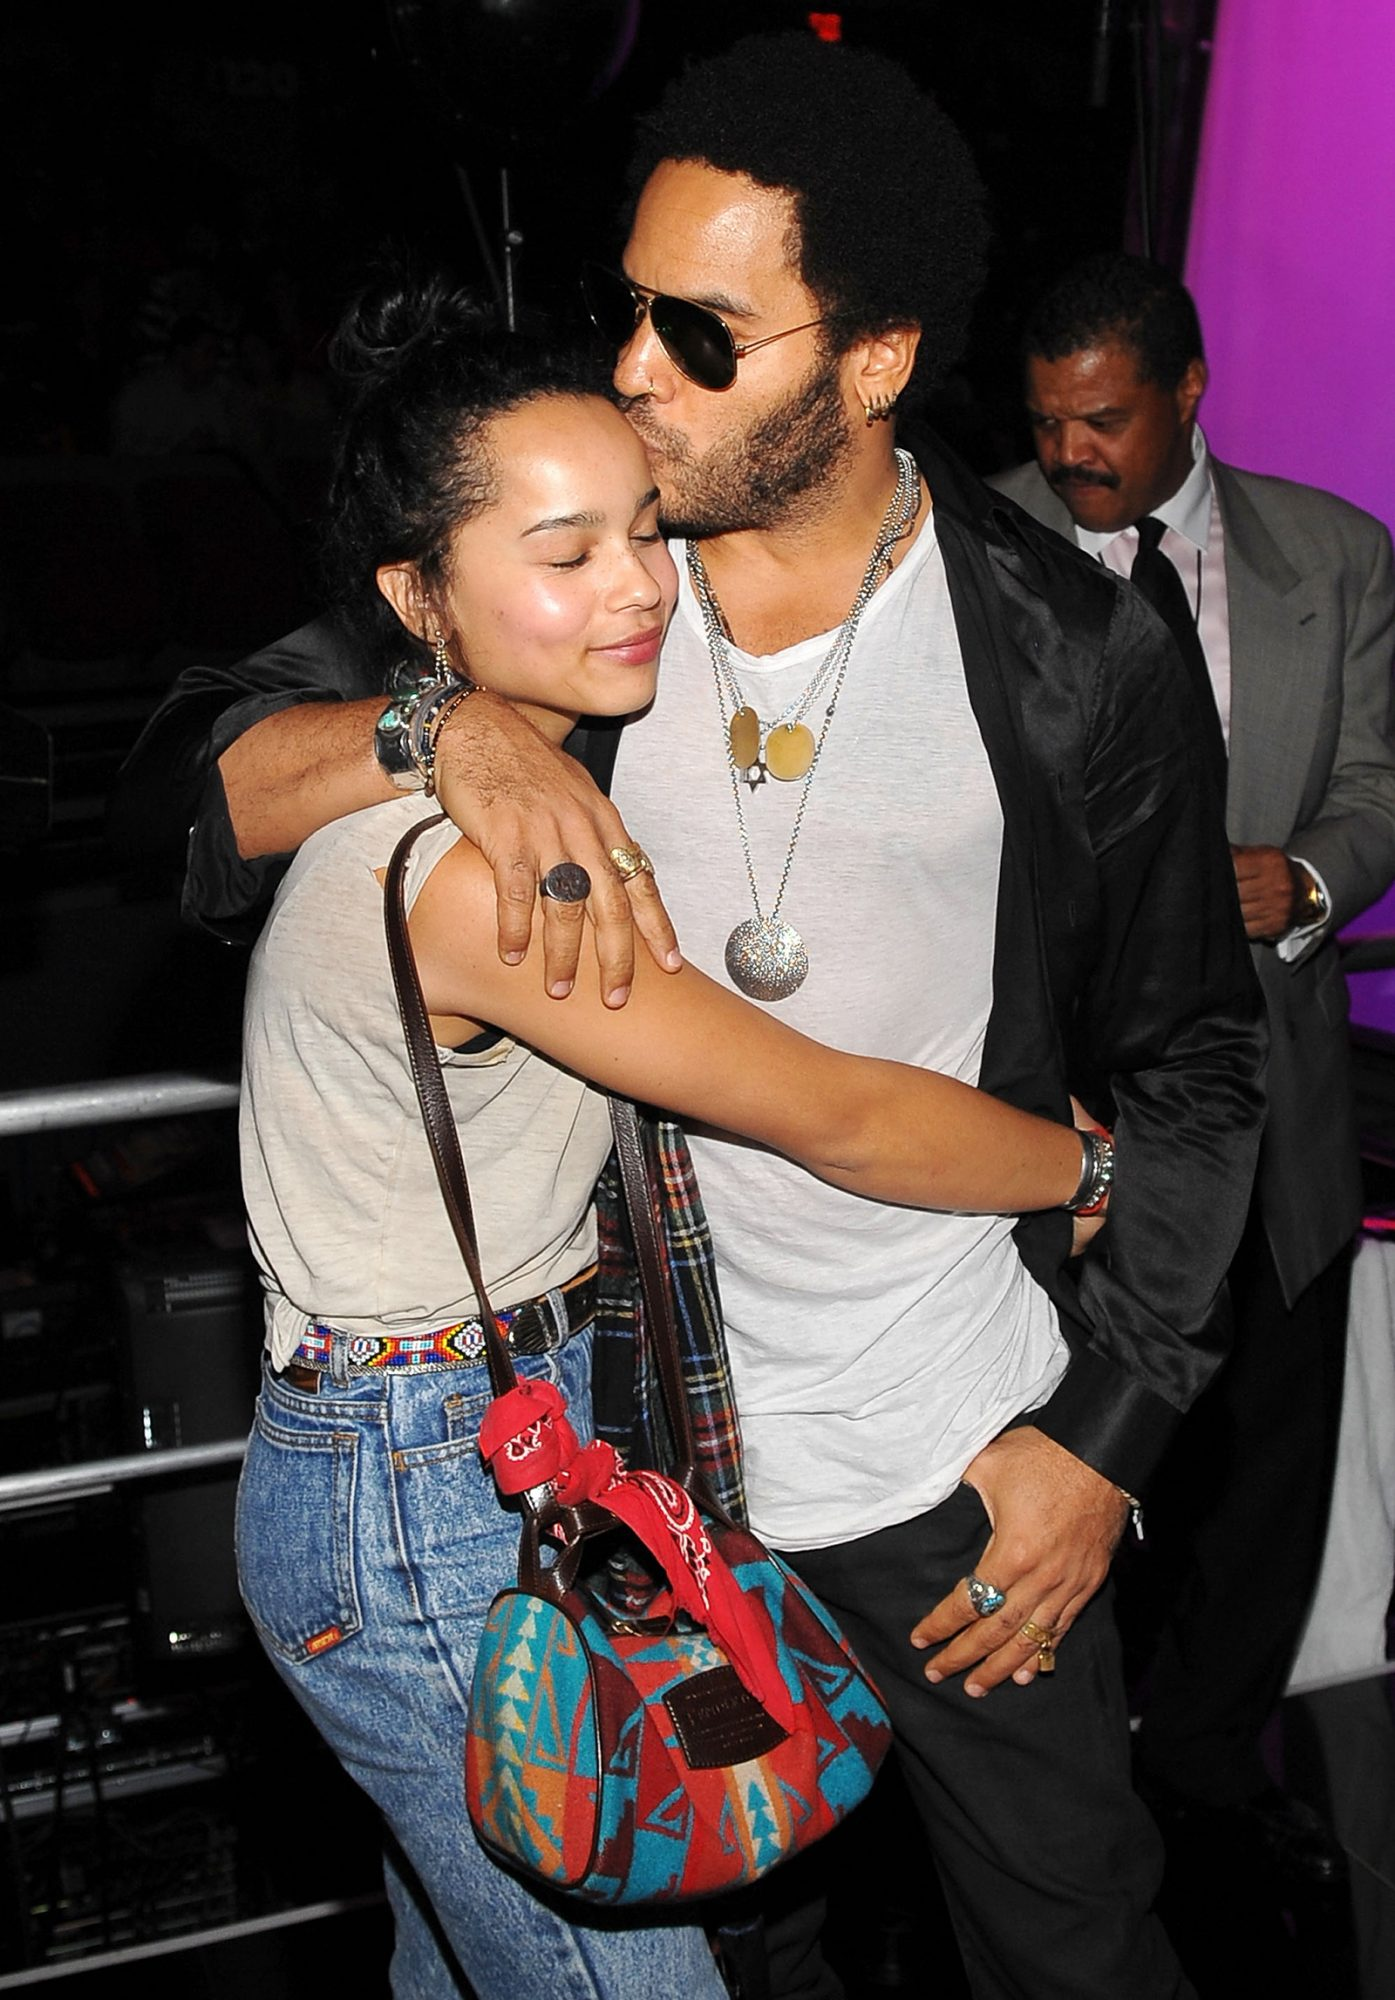 Zoe Kravitz and Lenny Kravitz attend the 25th Anniversary Rock & Roll Hall of Fame Concert at Madison Square Garden on October 30, 2009 in New York City